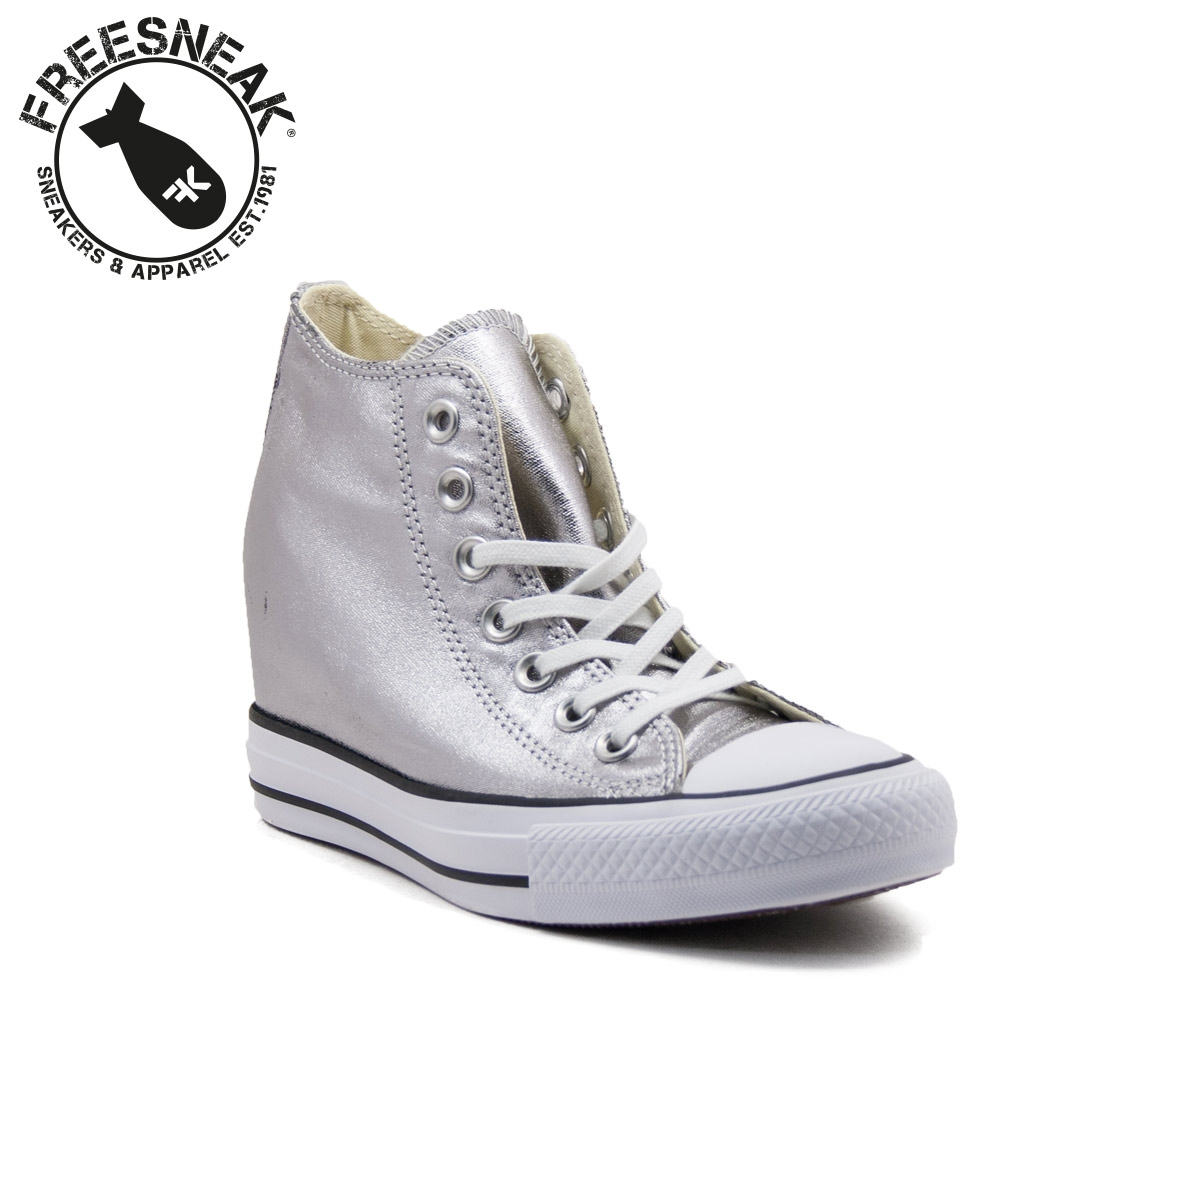 2converse all star argento